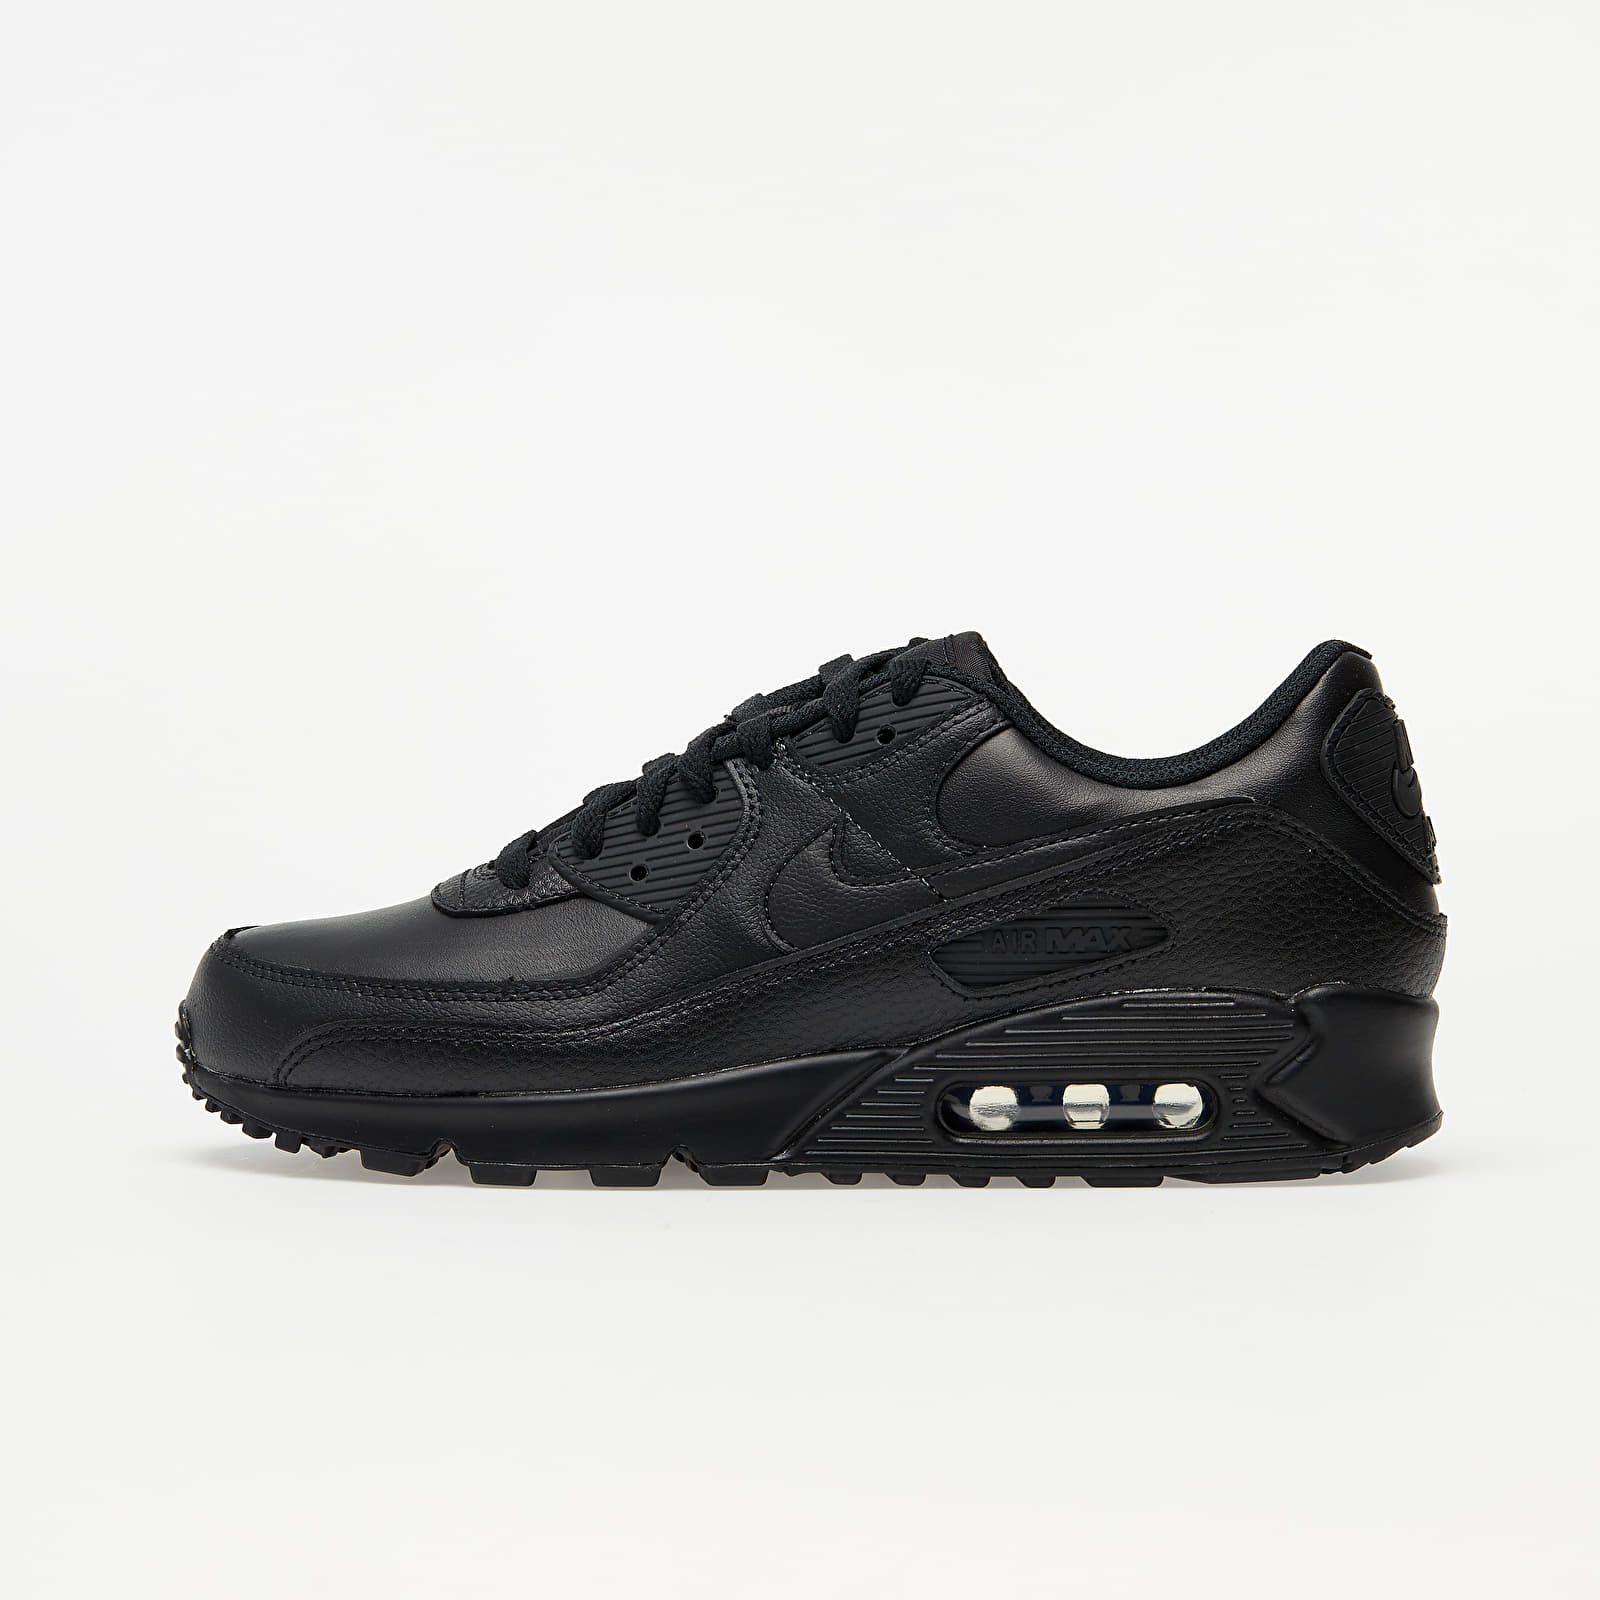 Nike Air Max 90 Leather Black/ Black-Black EUR 42.5